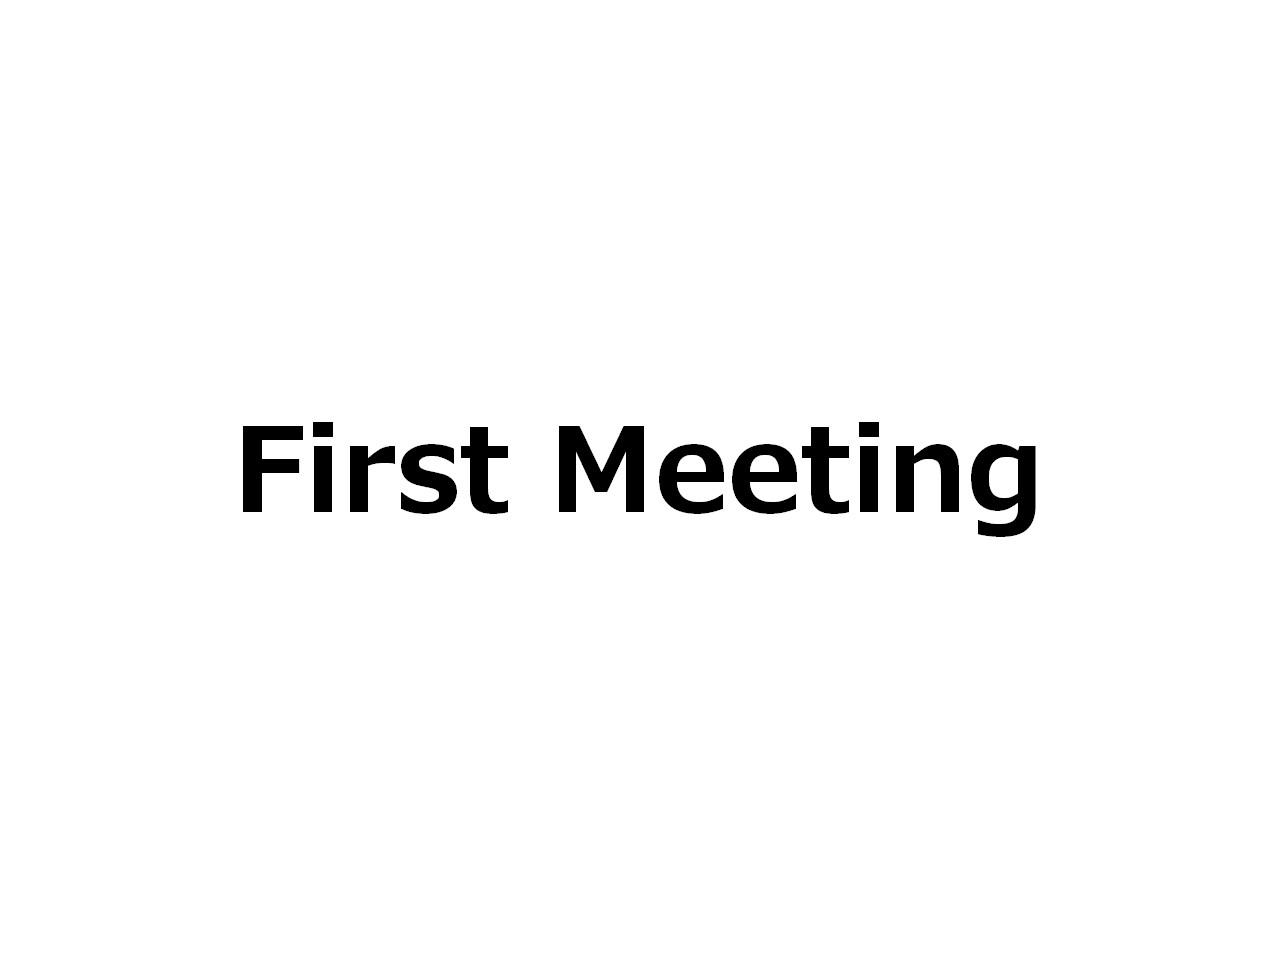 Question : First Meeting